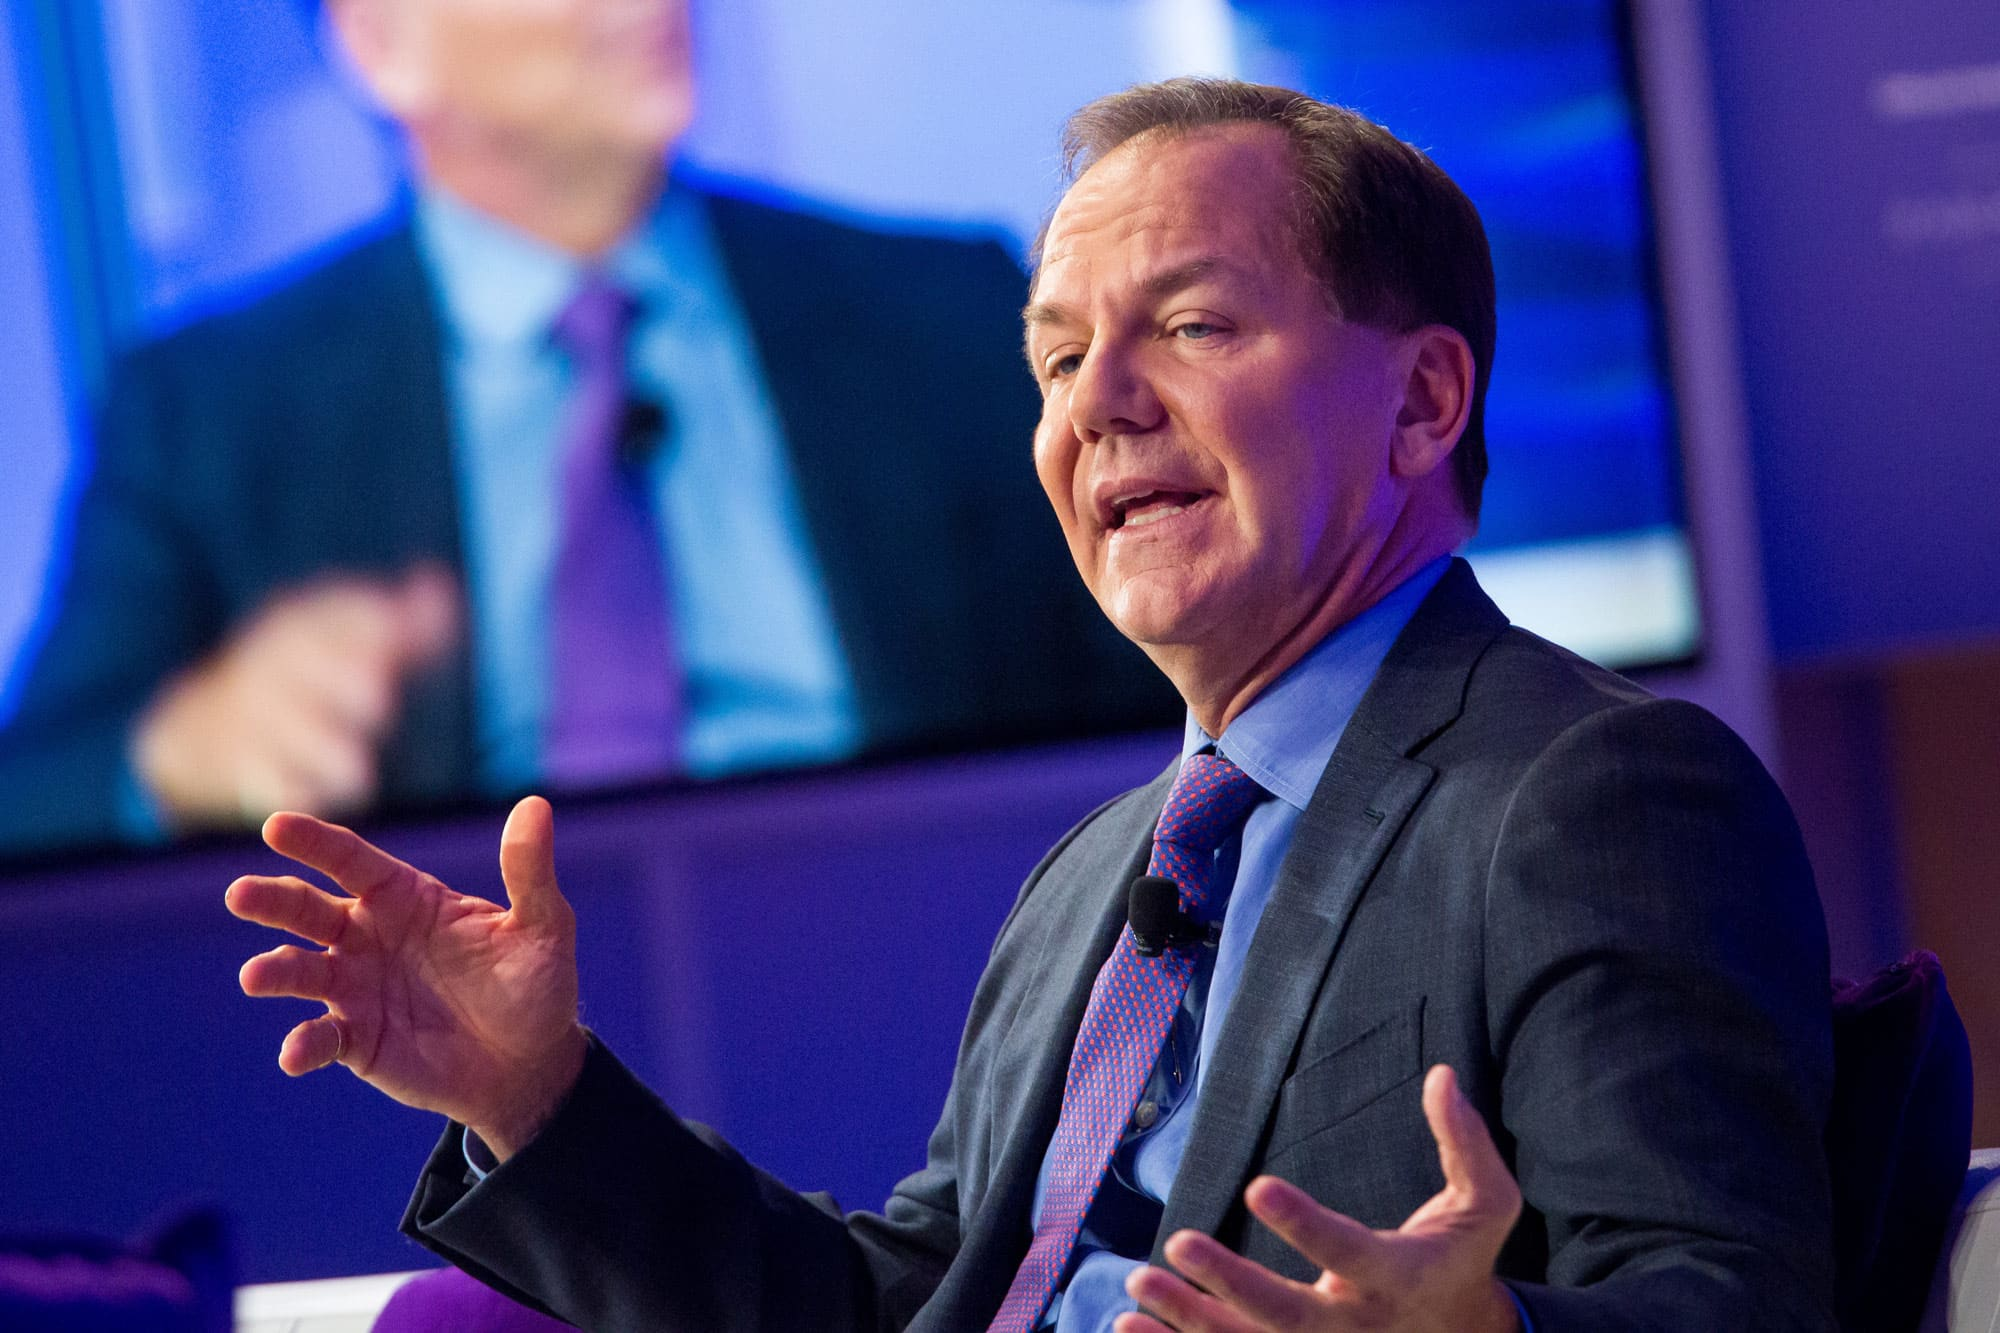 Paul Tudor Jones sees an 'explosive combination' of forces driving the market higher